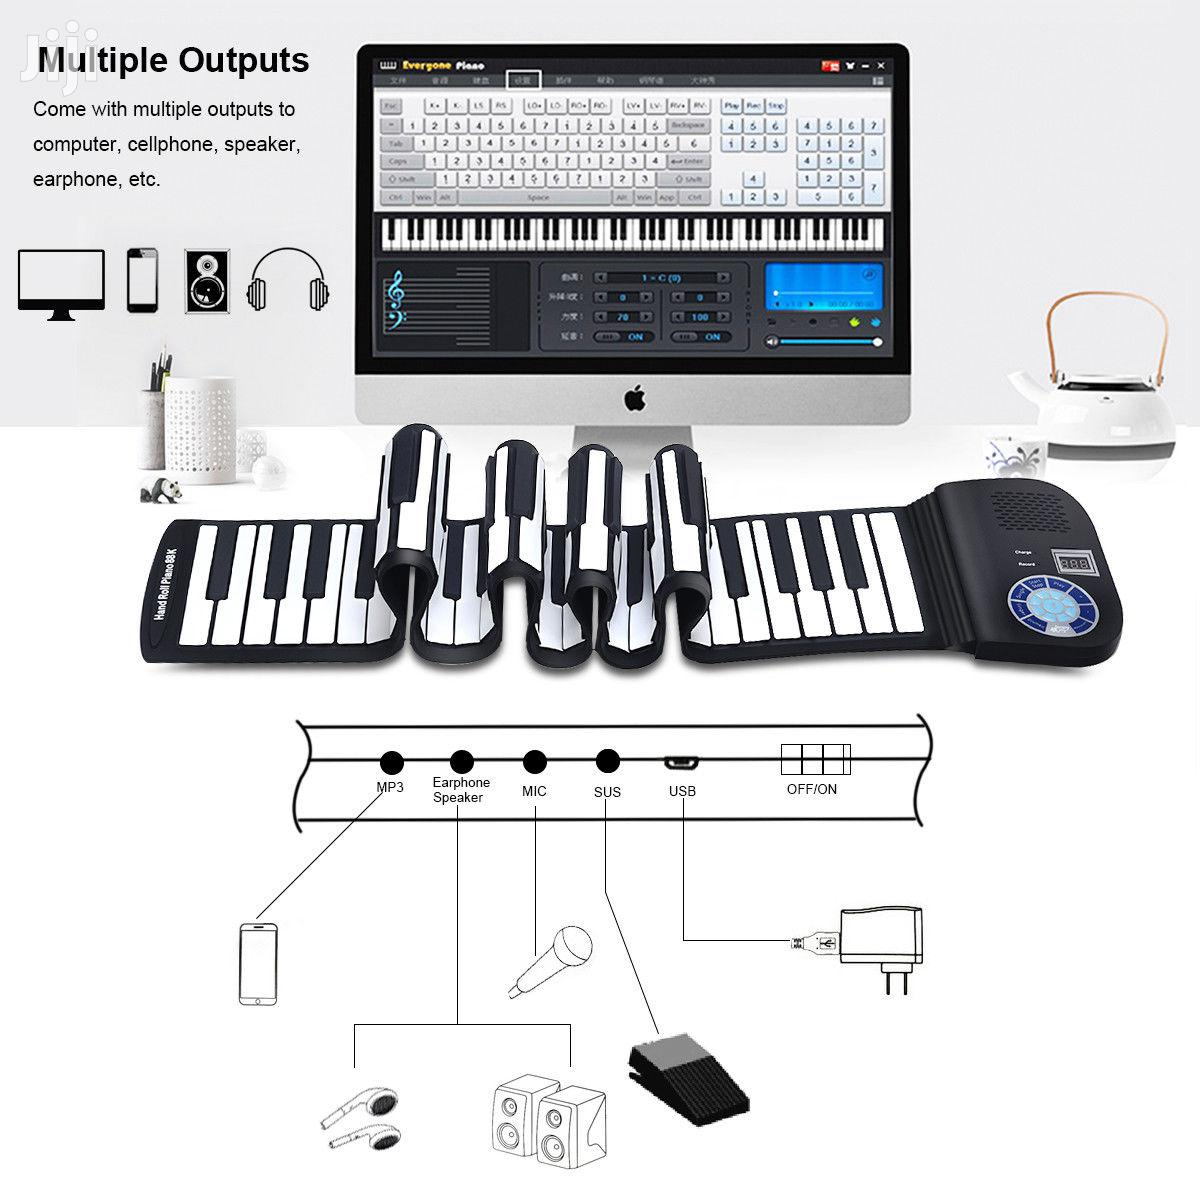 88 Keys MIDI Piano Roll Up Flexible Keyboard With Speakers | Musical Instruments & Gear for sale in Nairobi Central, Nairobi, Kenya